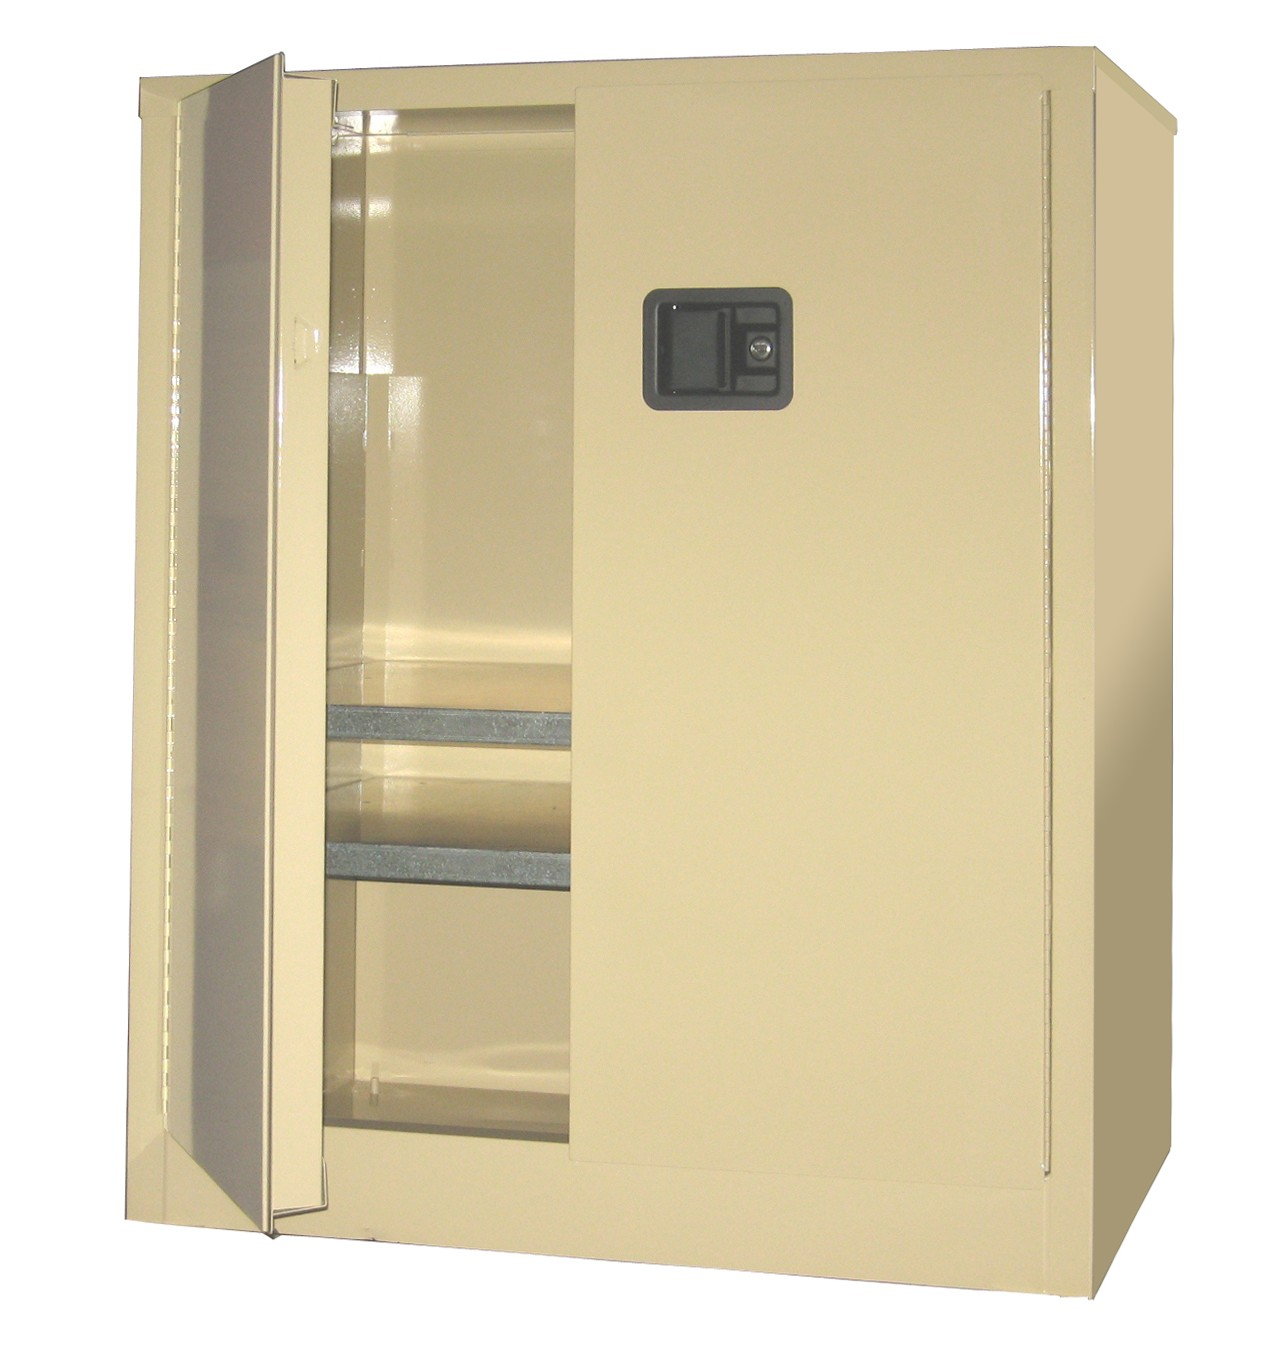 SS242 - Industrial Storage Cabinet - 21 Cubic Feet Capacity